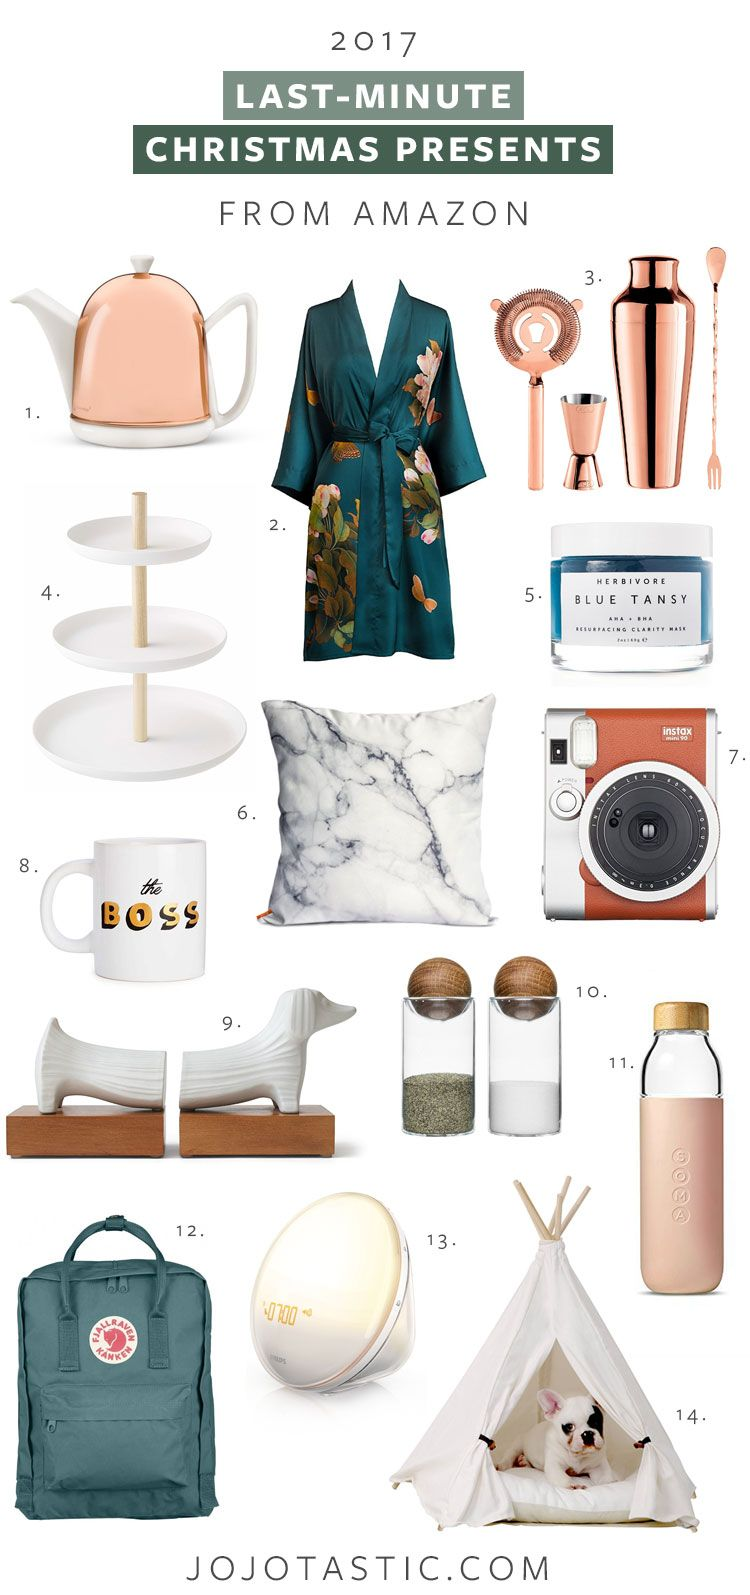 Your Last Minute Holiday Shopping Guide For Amazon Gift Guides